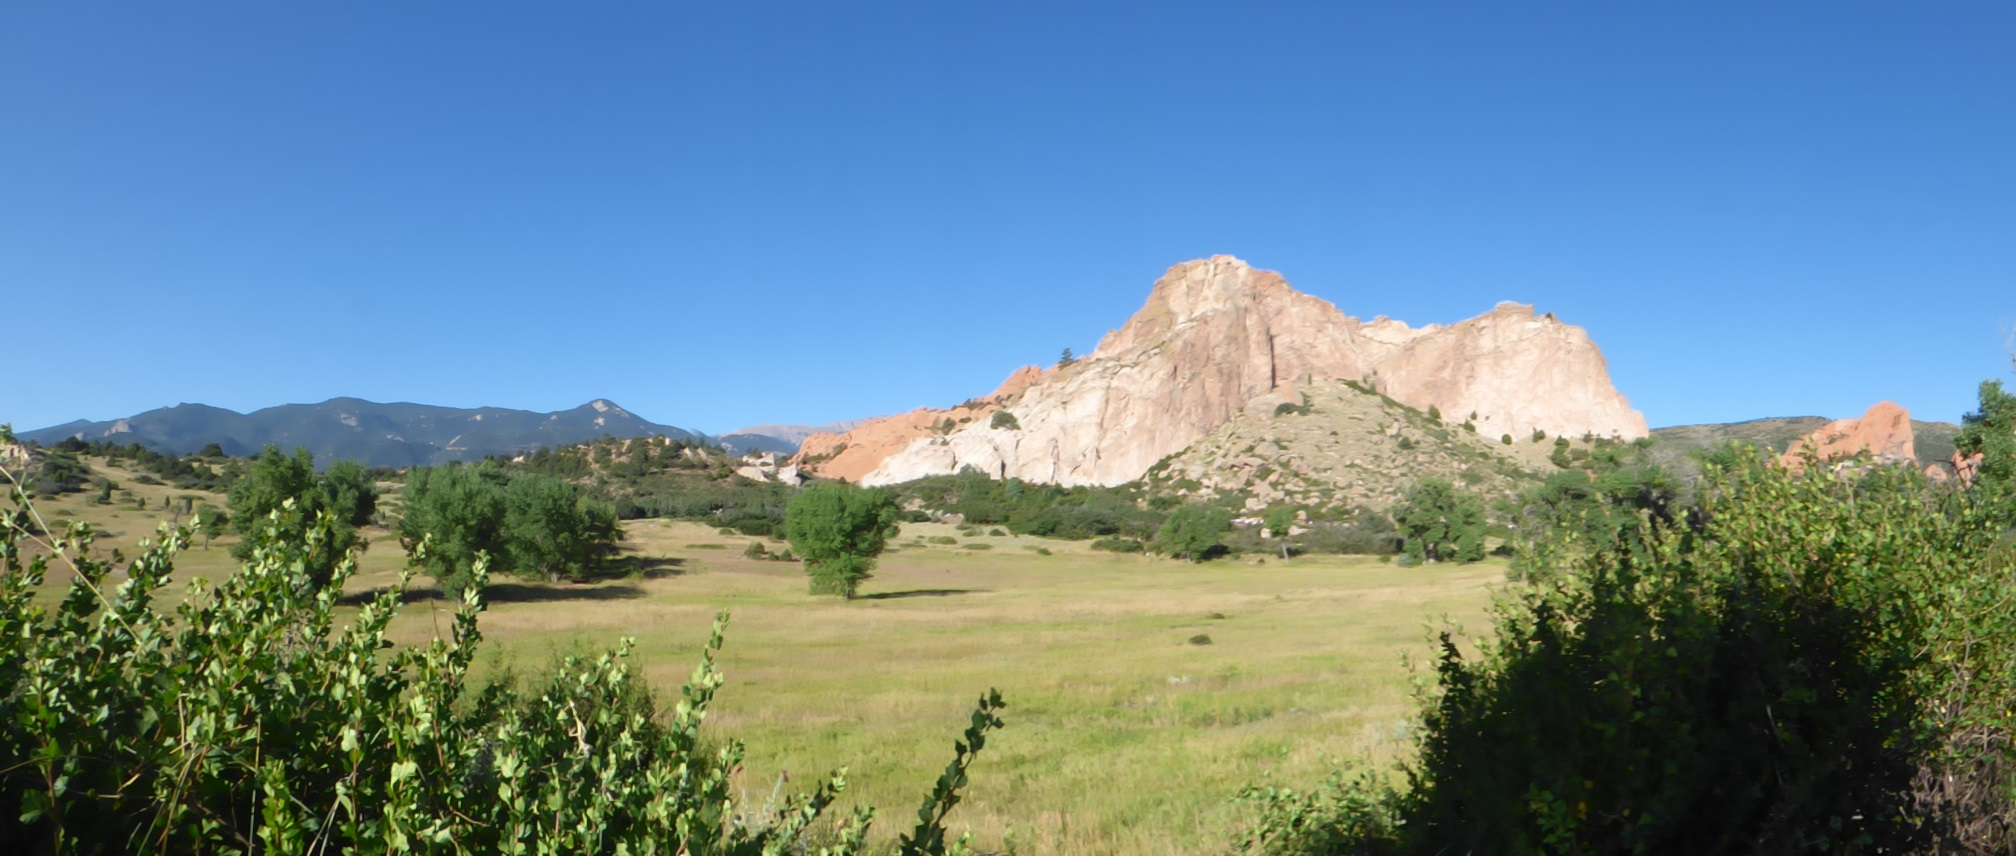 garden of the gods colorado springs 16 pan